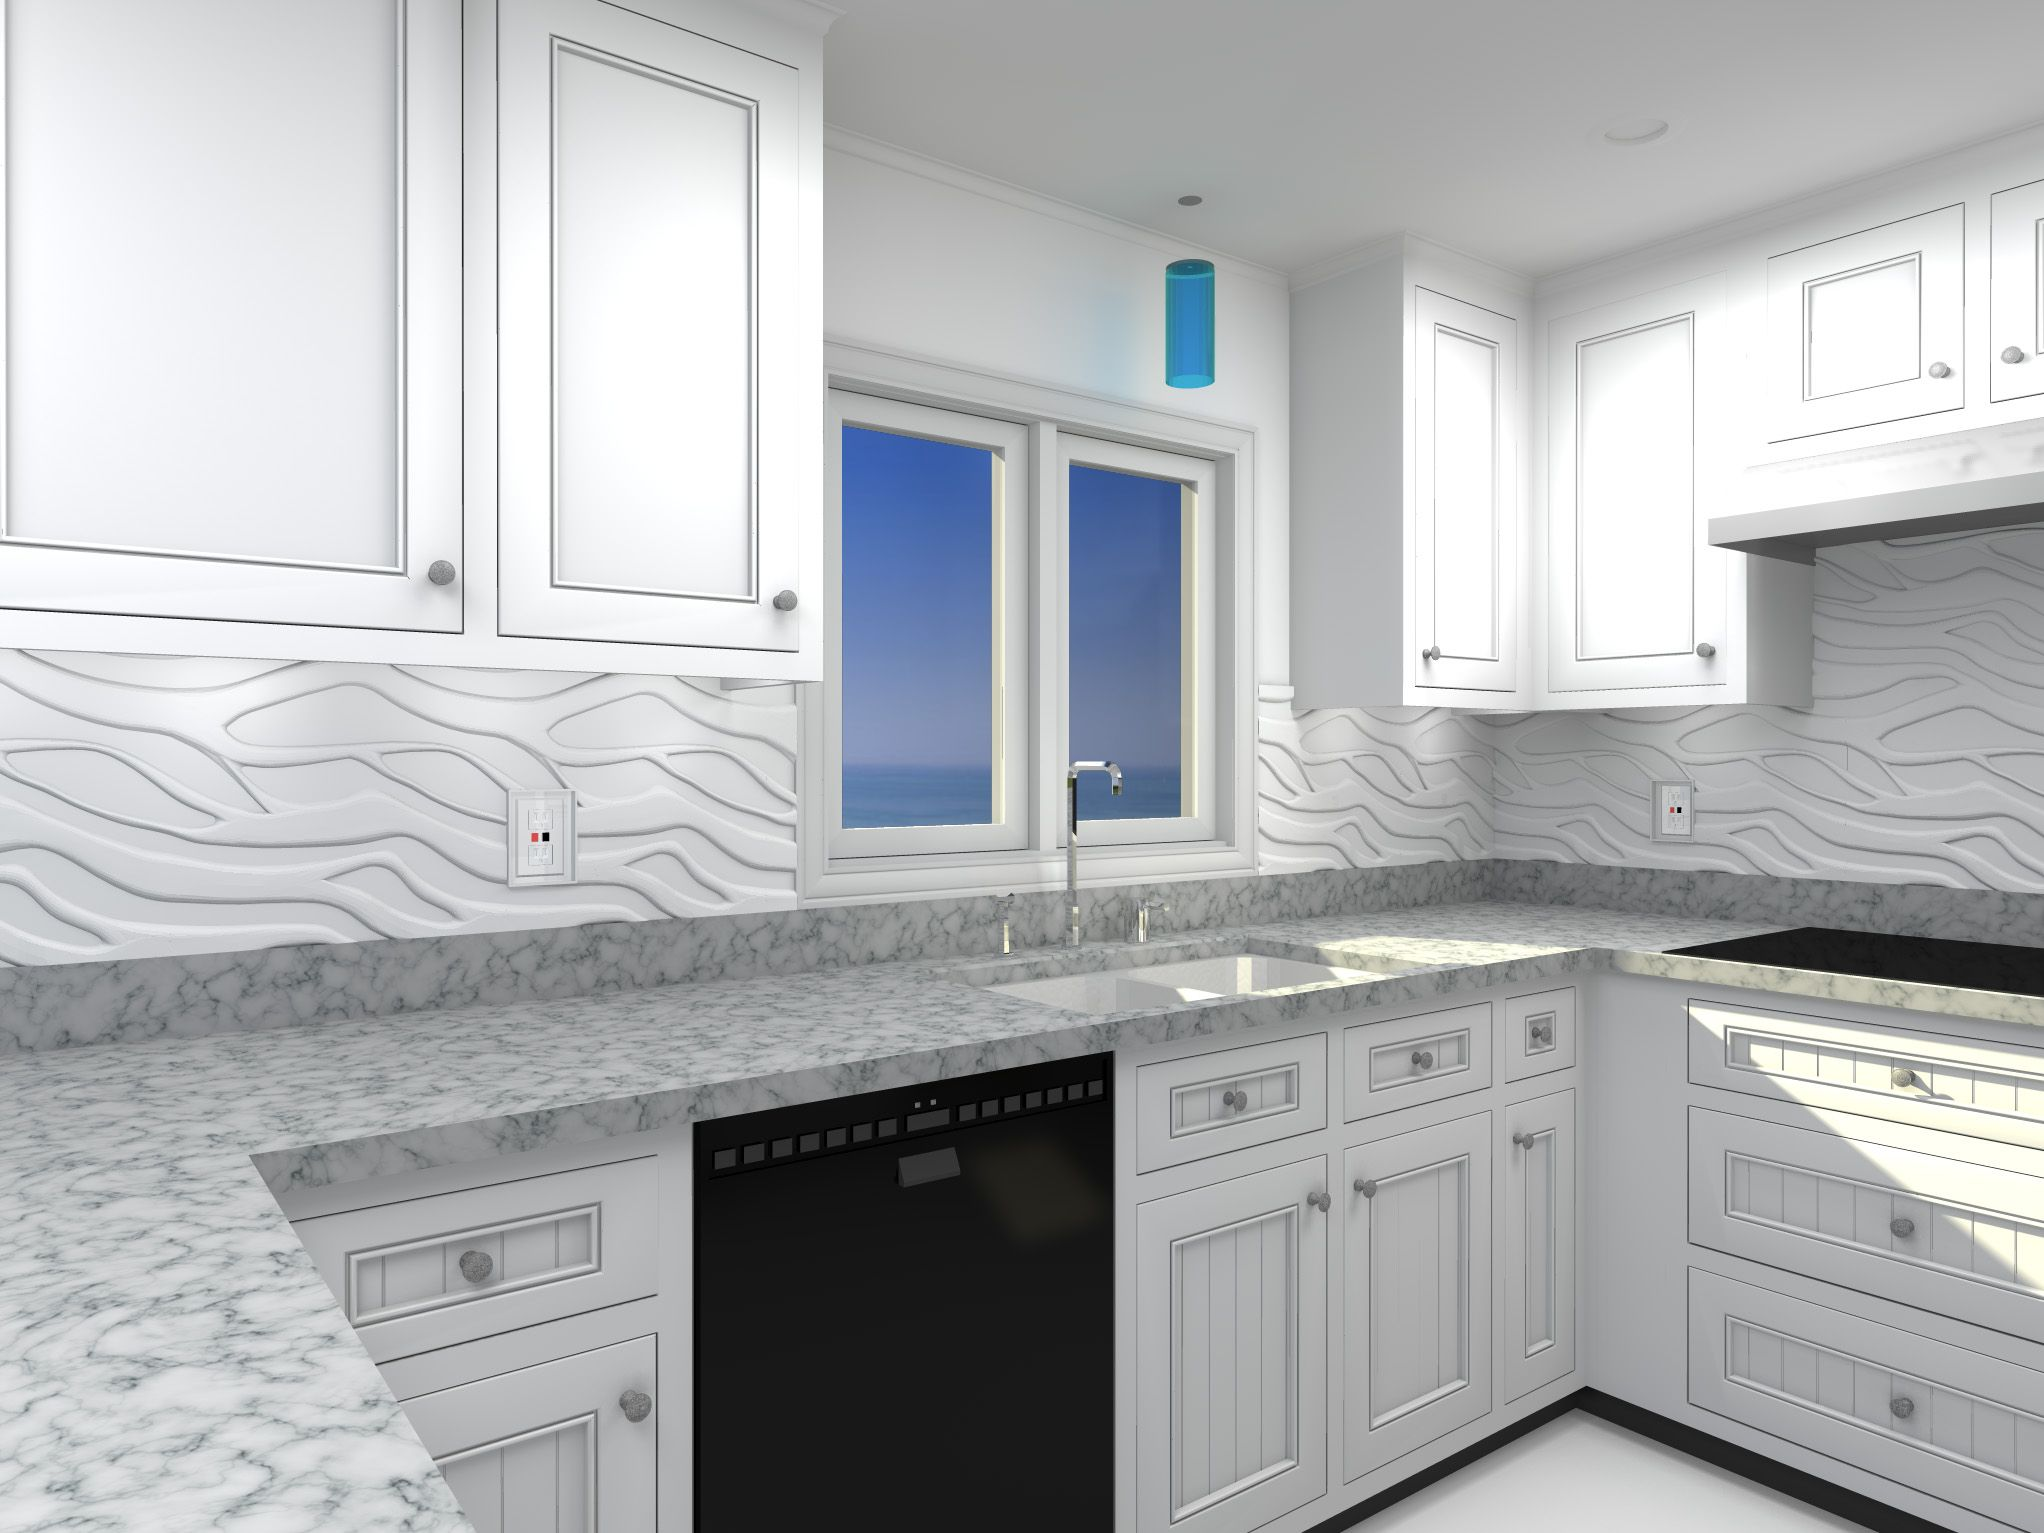 3d Wall Panels As A Backsplash   Google Search